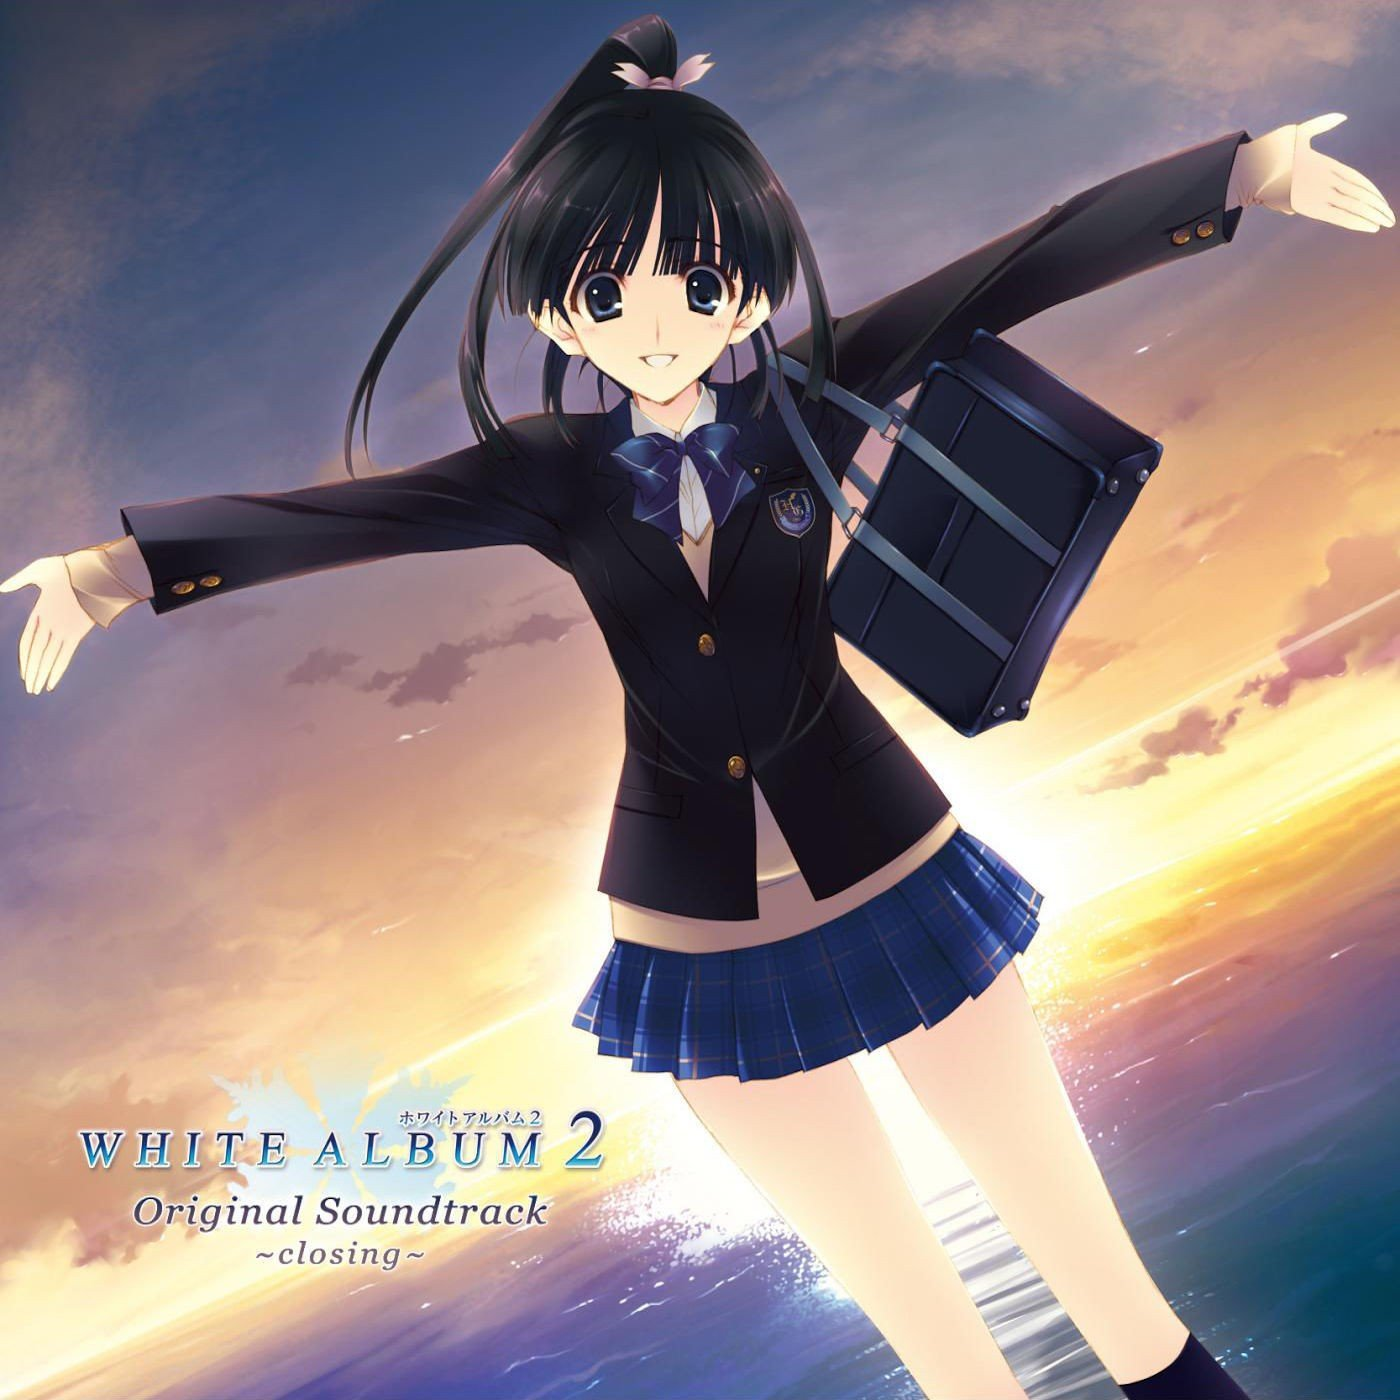 WHITE ALBUM 2 ORIGINAL SOUNDTRACK ~closing~